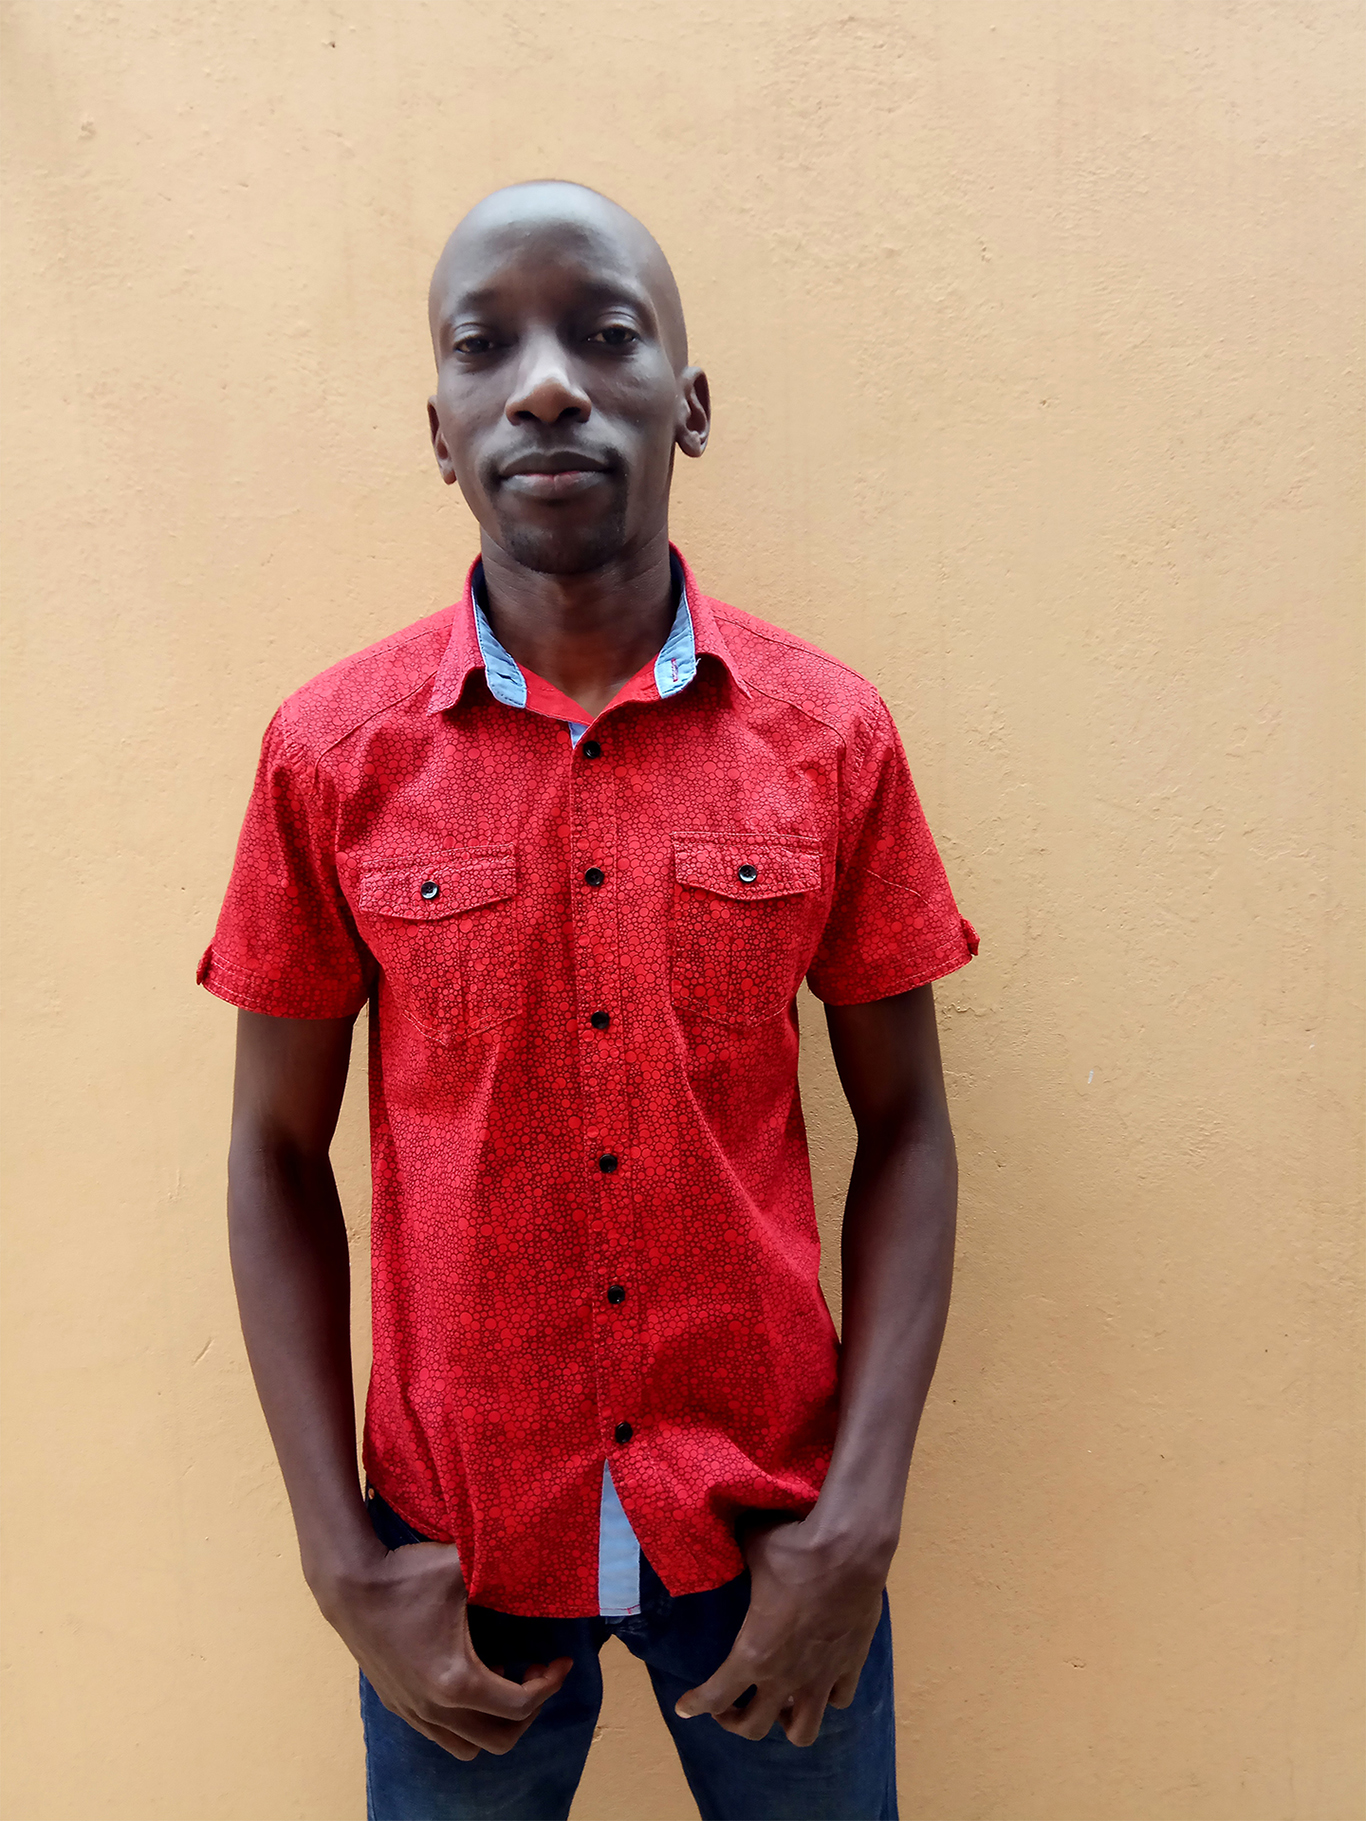 Men's fashion in Nairobi Kenya red shirt